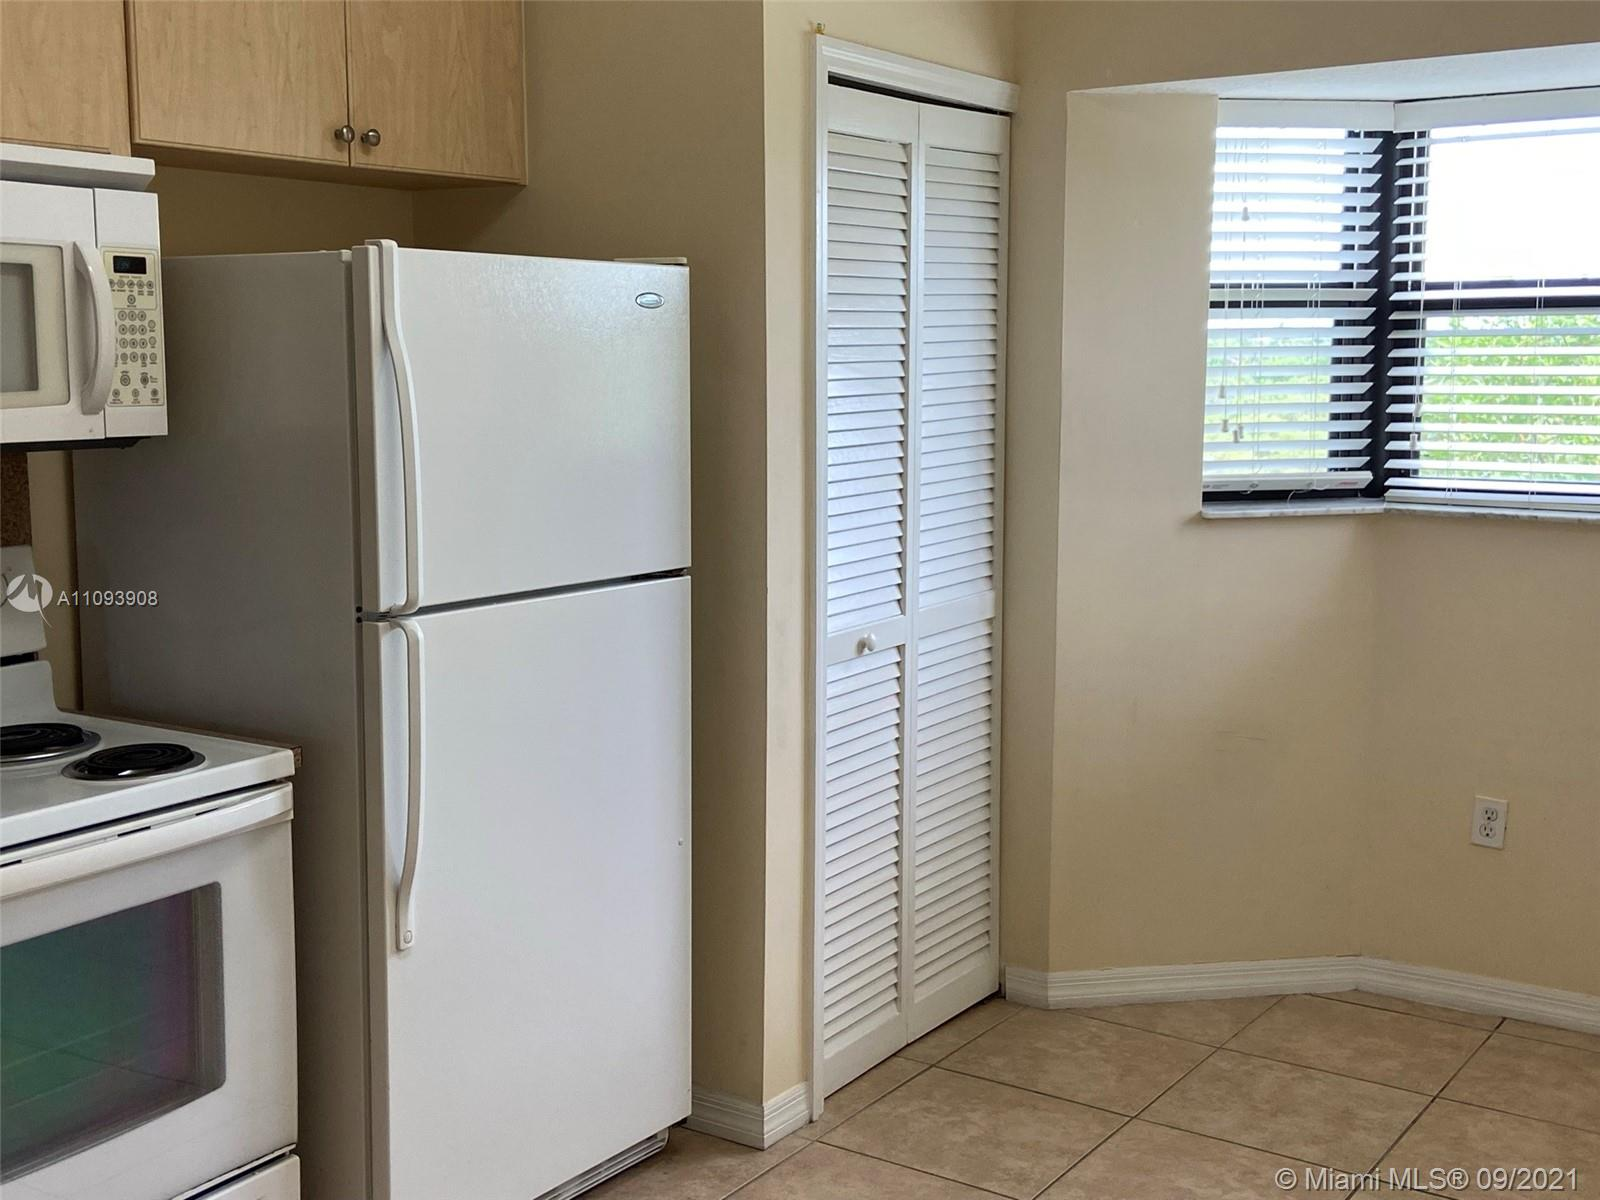 BEAUTIFUL CENTRALLY LOCATED APARTMENT 2BED/2BATH LOCATED IN ISLES OF BAYSHORE. JUST PAINTED WELL KEPT UNIT, SPLIT PLAN OPEN GREEN VIEW FROM KITCHEN AND MASTER BEDROOM. CLOSET SPACE AND VERTICAL BLINDS IN ALL ROOMS. EXCELLENT LOCATION 5 MINUTES AWAY FRO M THE TURNPIKE.